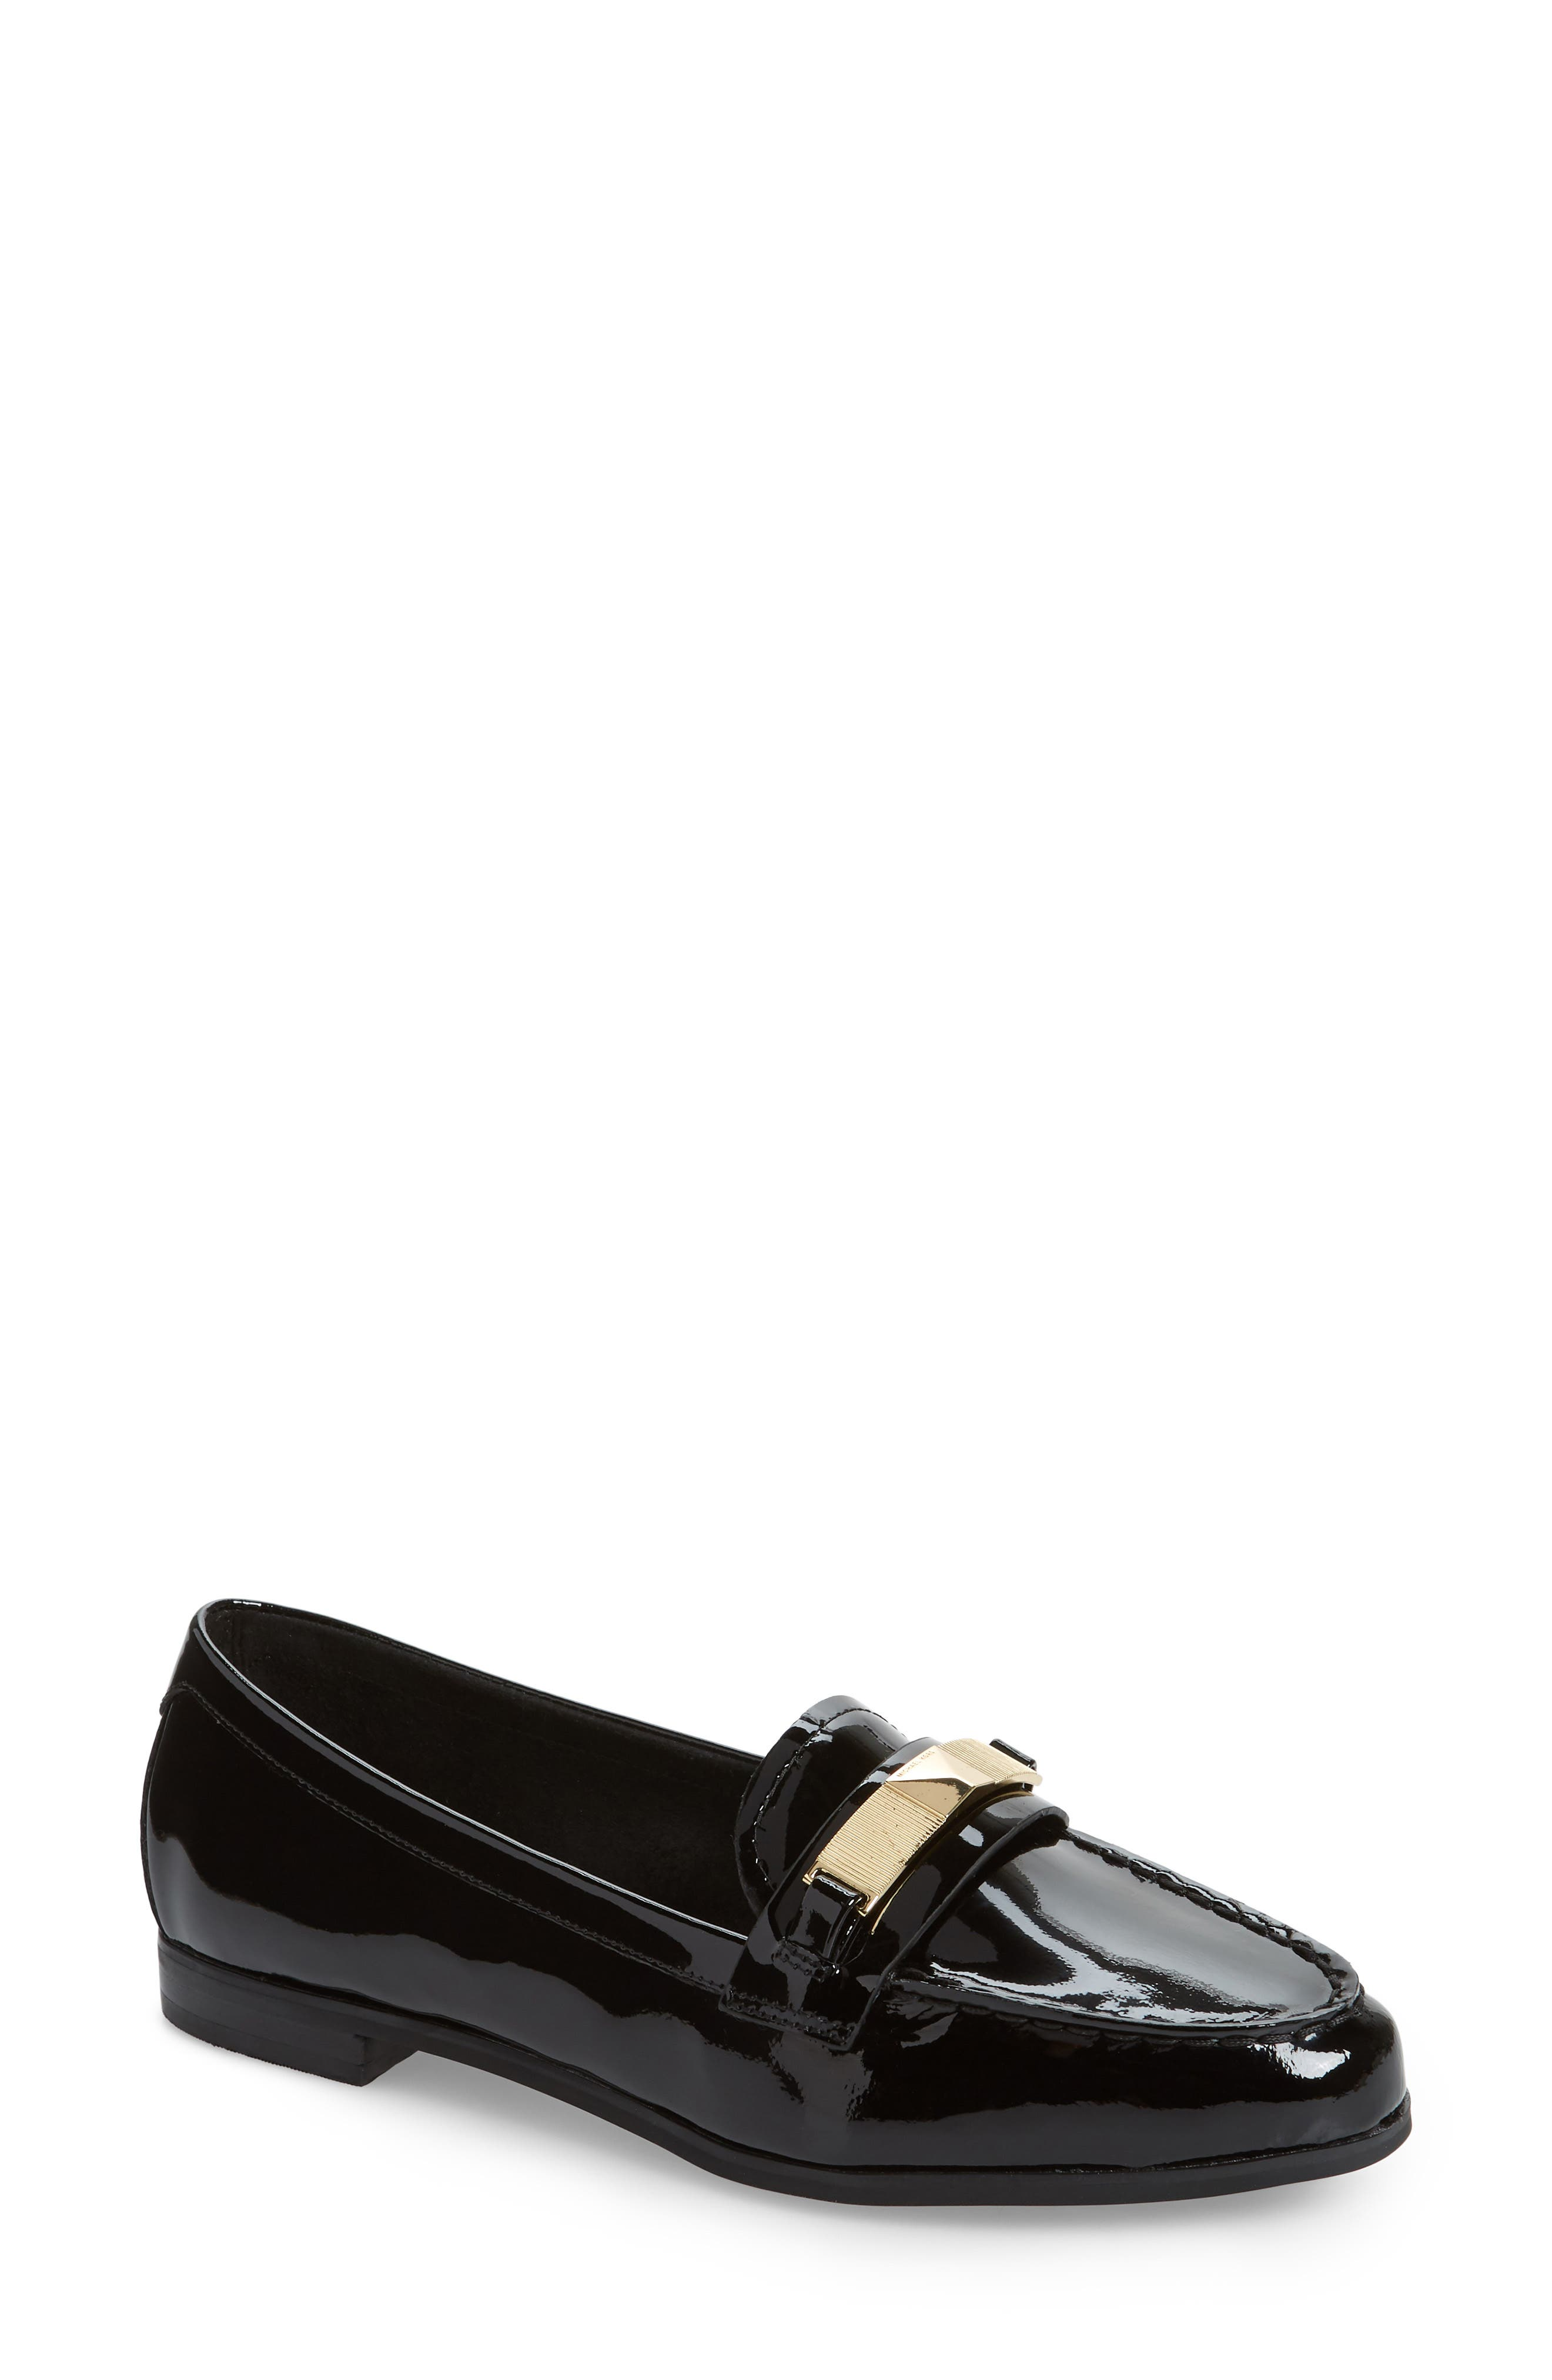 Paloma Loafer in Black Patent